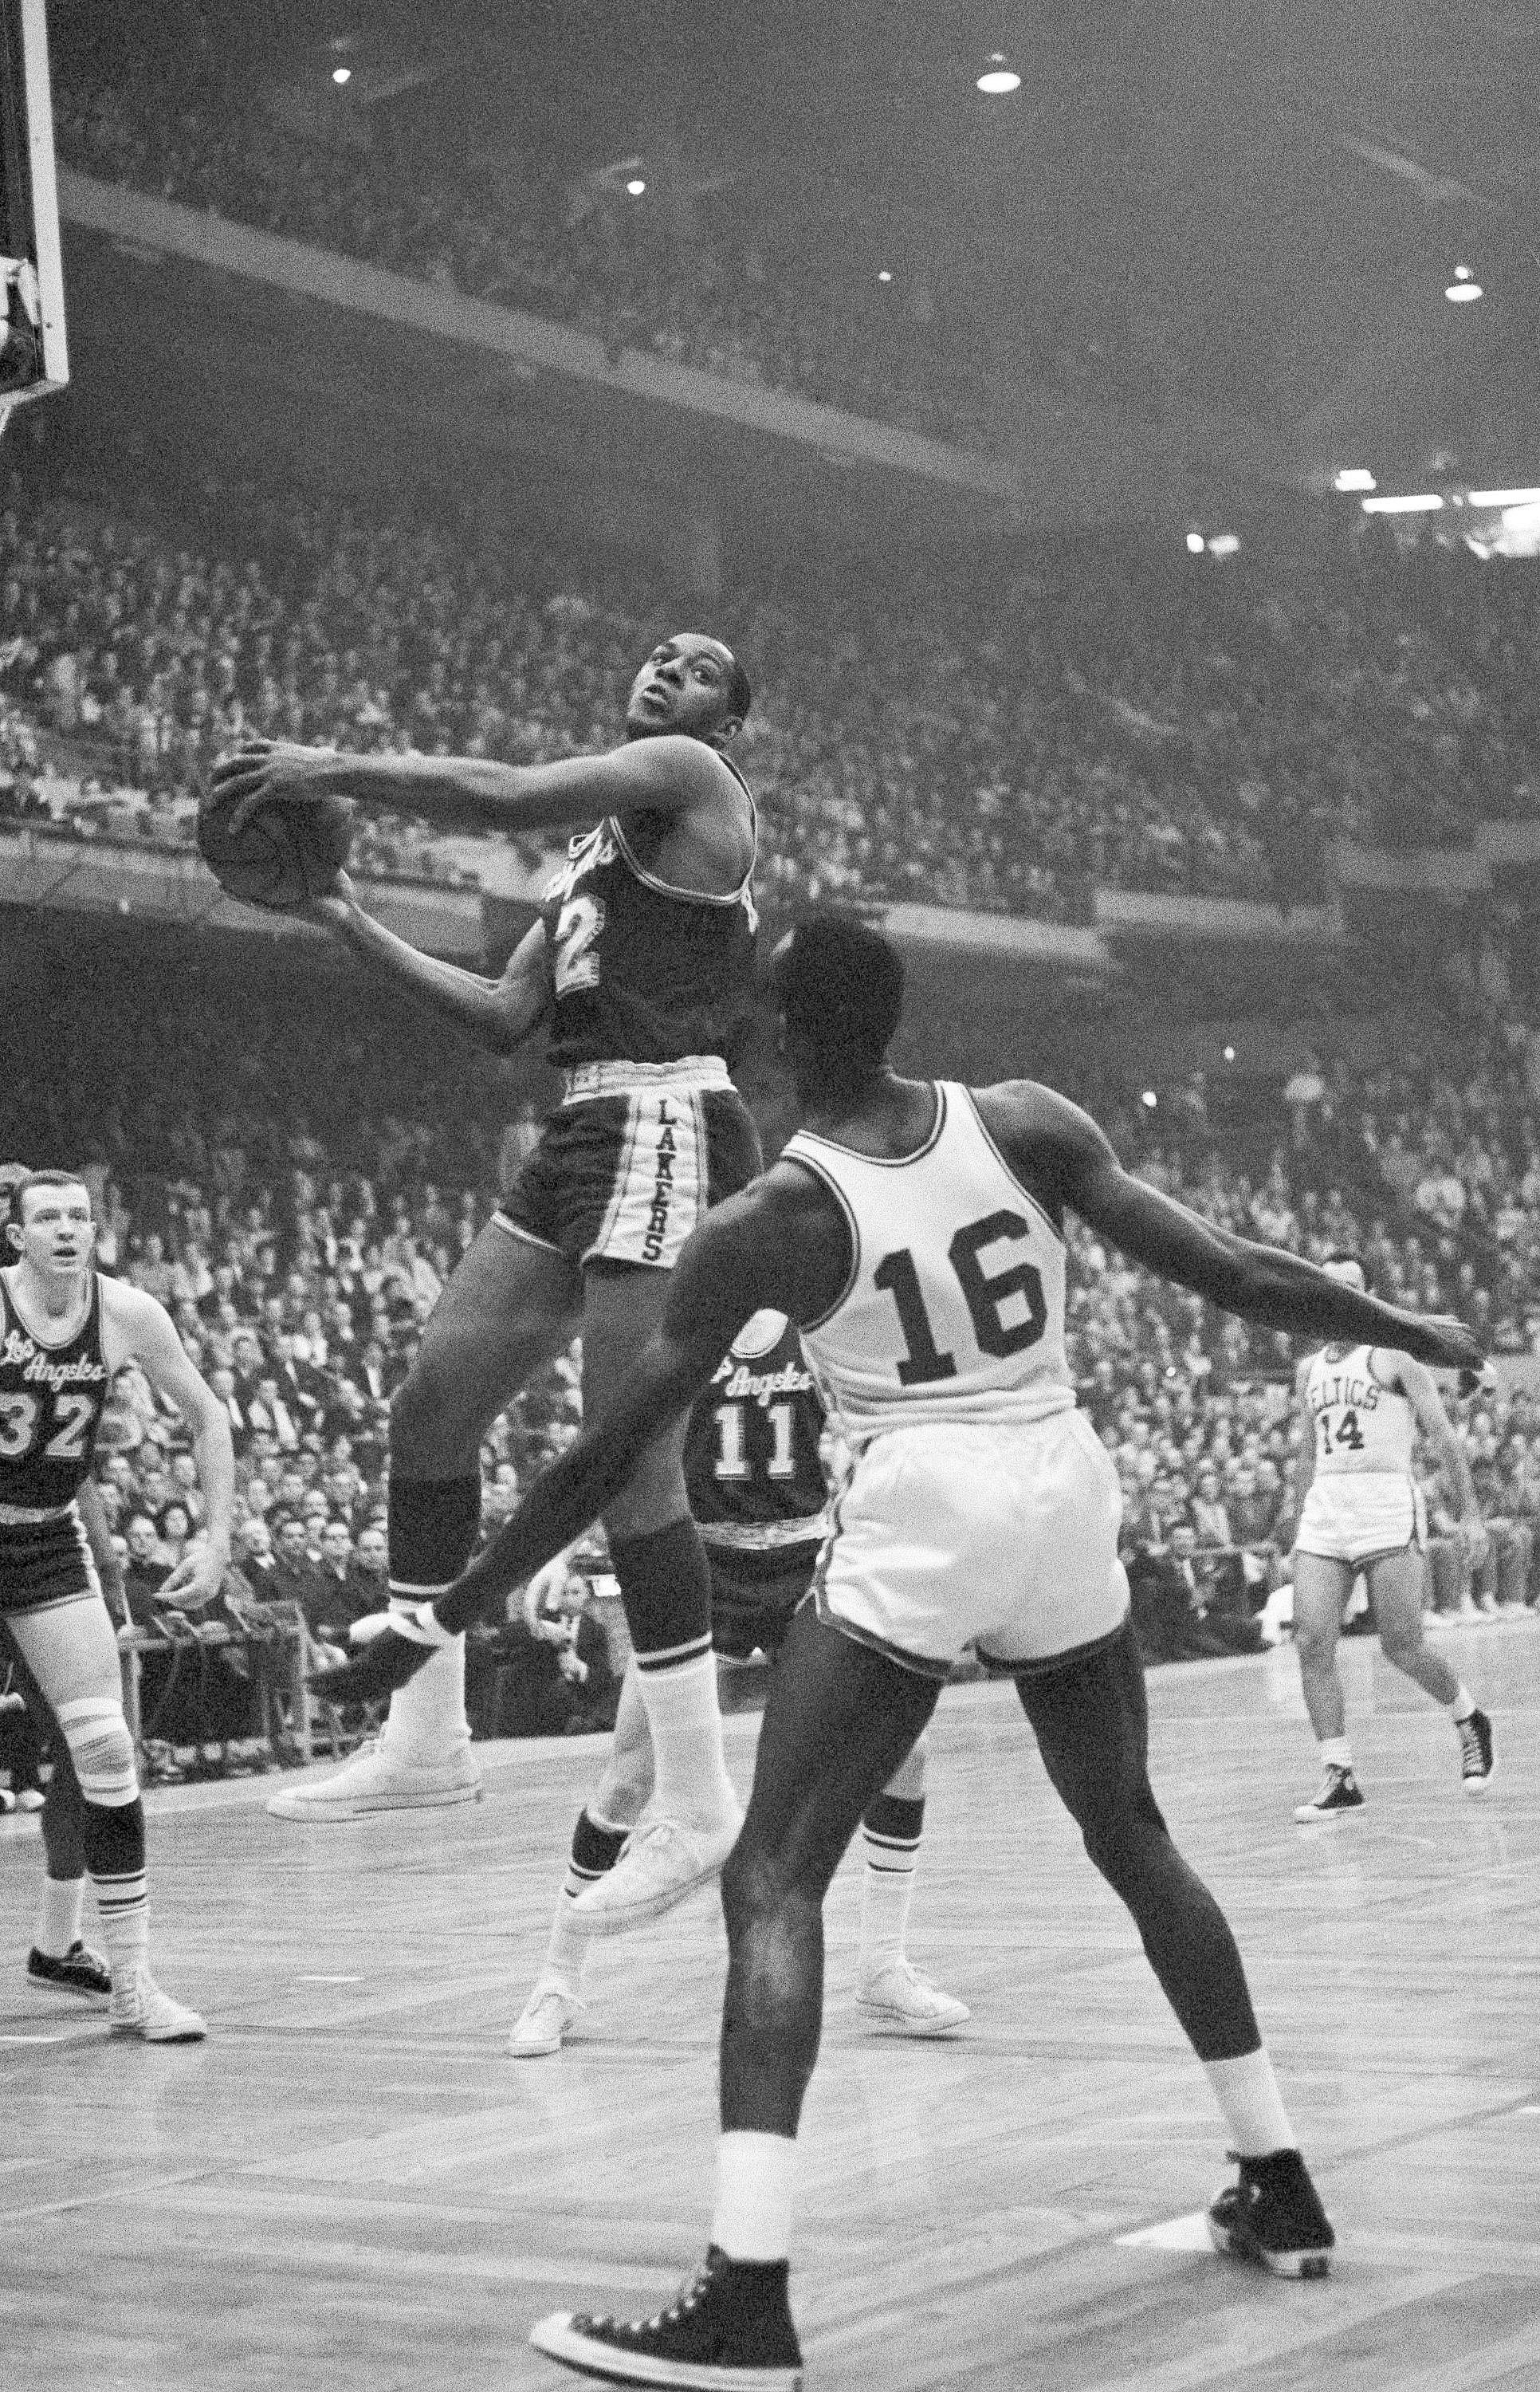 Los Angeles Lakers' Elgin Baylor (L) drives against the Boston Celtics during the NBA championship game in Boston, U.S., April 19, 1962. (AP Photo)